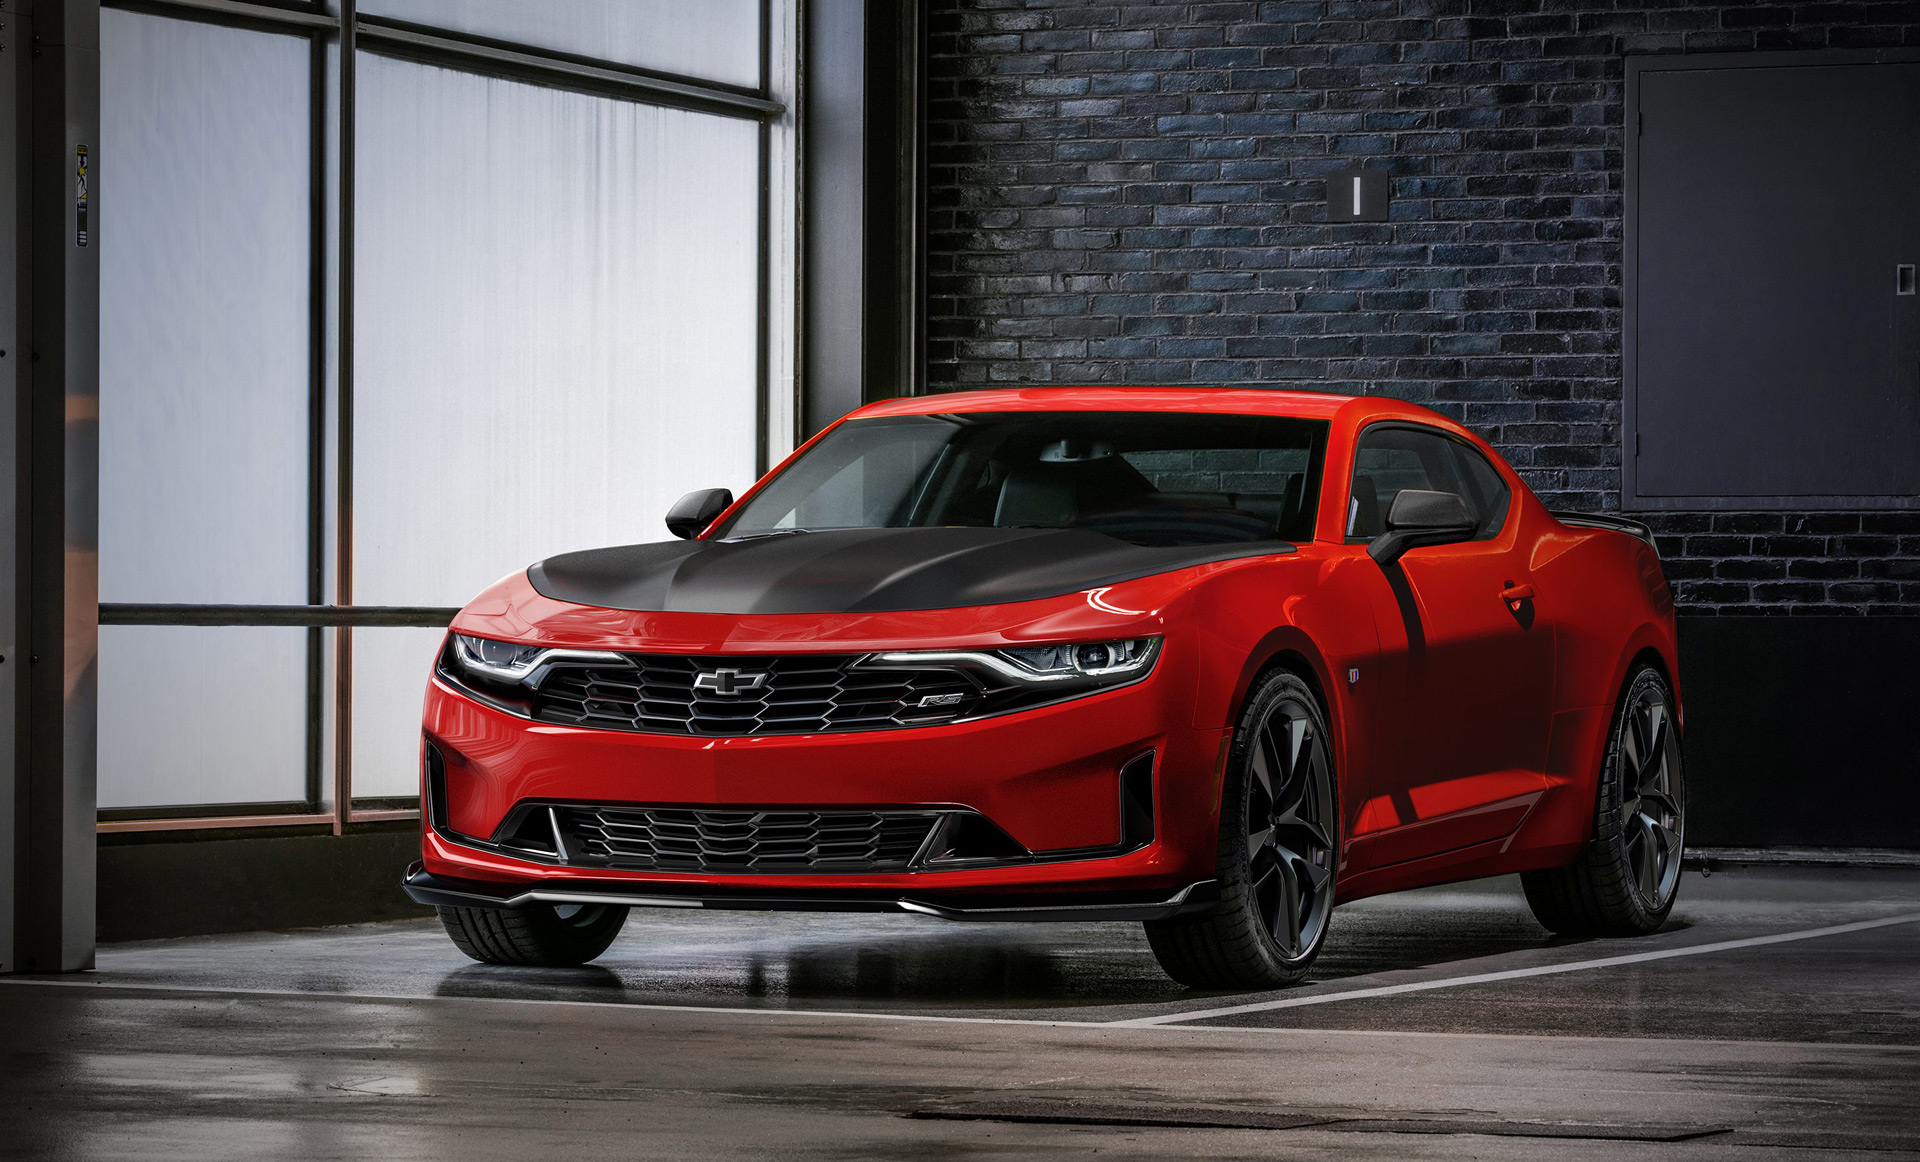 Chevy Camaro Bmw M2 Competition Buick Enspire Concept Car News